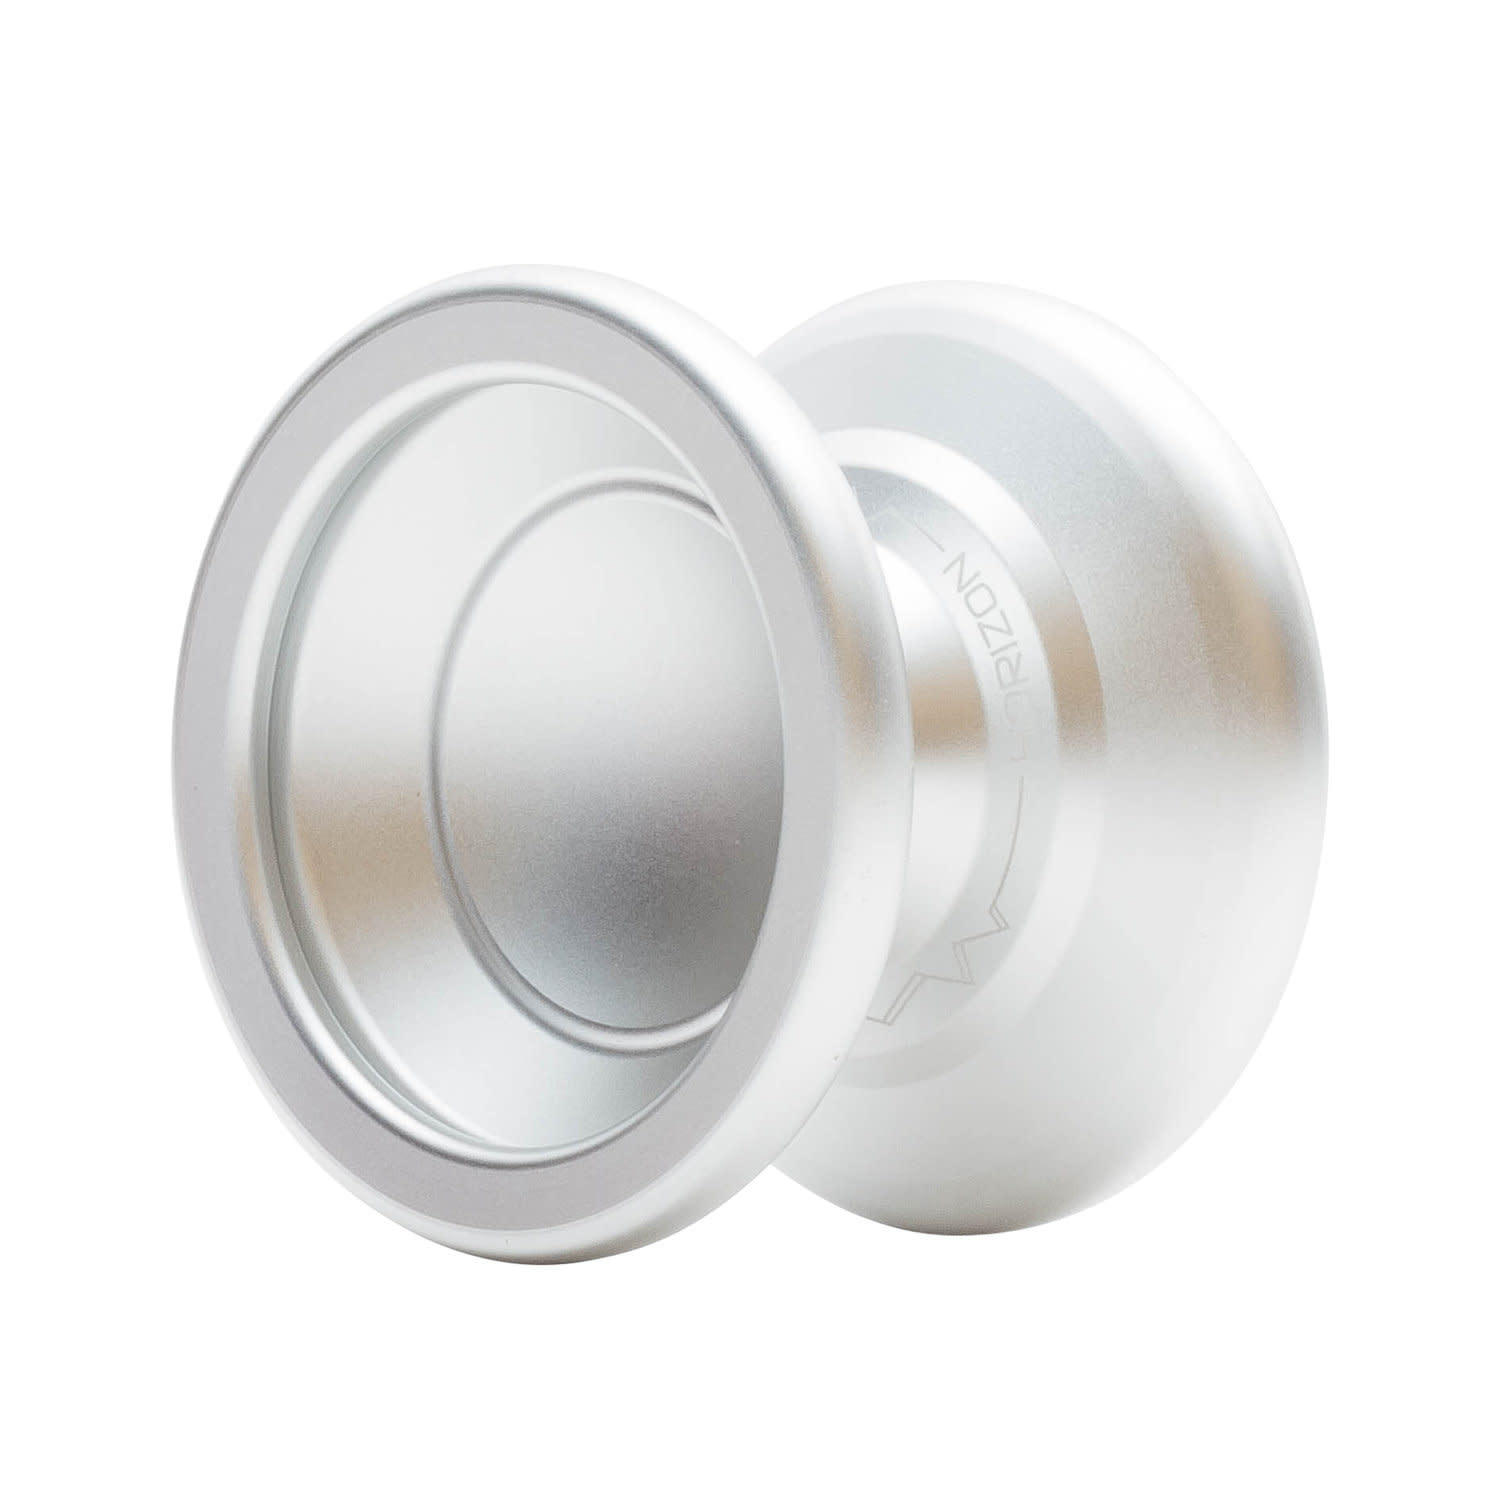 Yoyo Factory Horizon